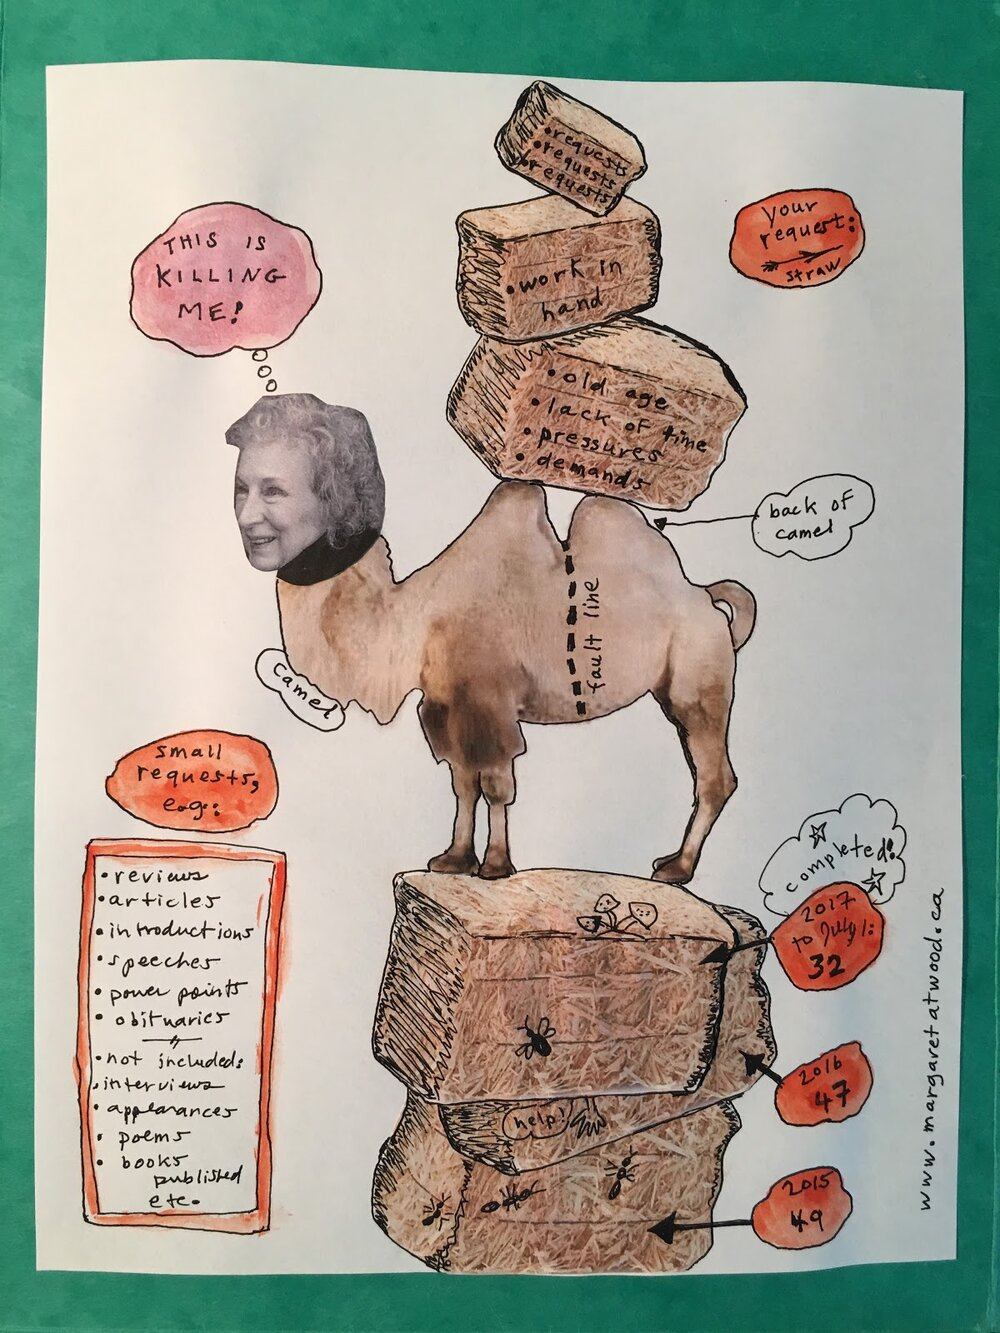 In her email, Atwood illustrated her busy life with this humorous image of a camel with straw piled high on its back.